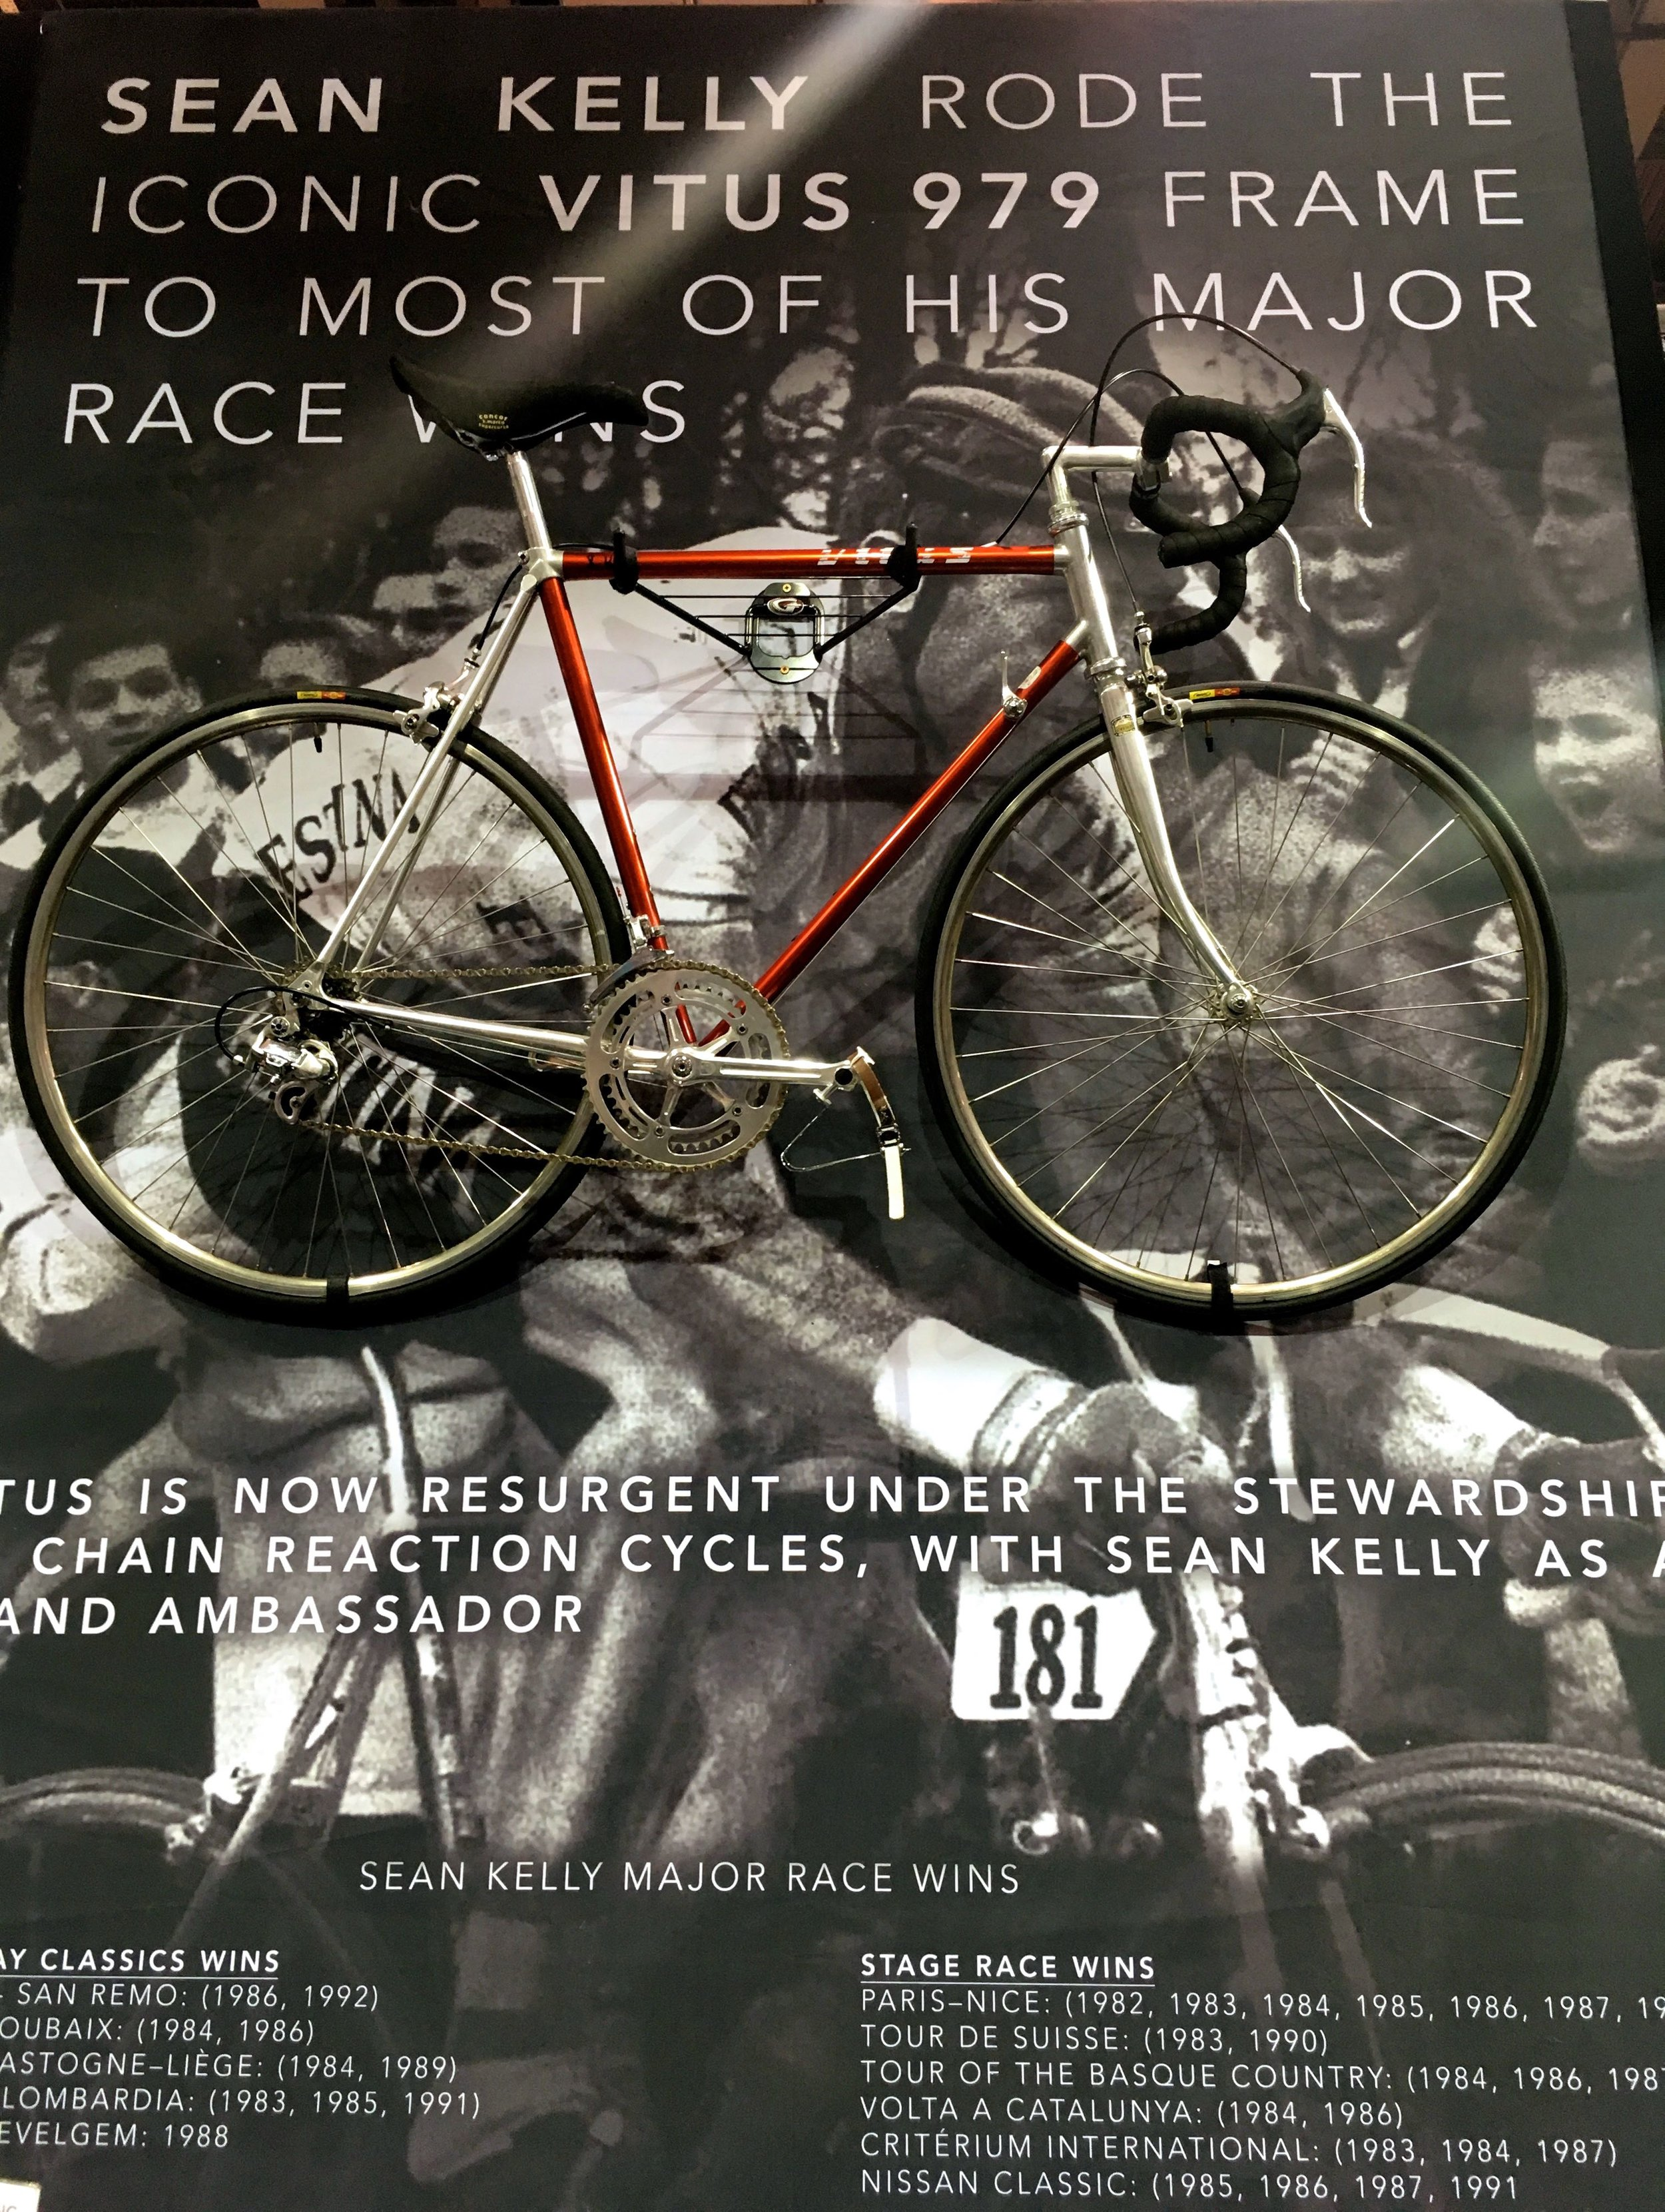 Sean Kelly rode the iconic vitus 979 frame for most of his major rice wins, poster at the London Bike Show